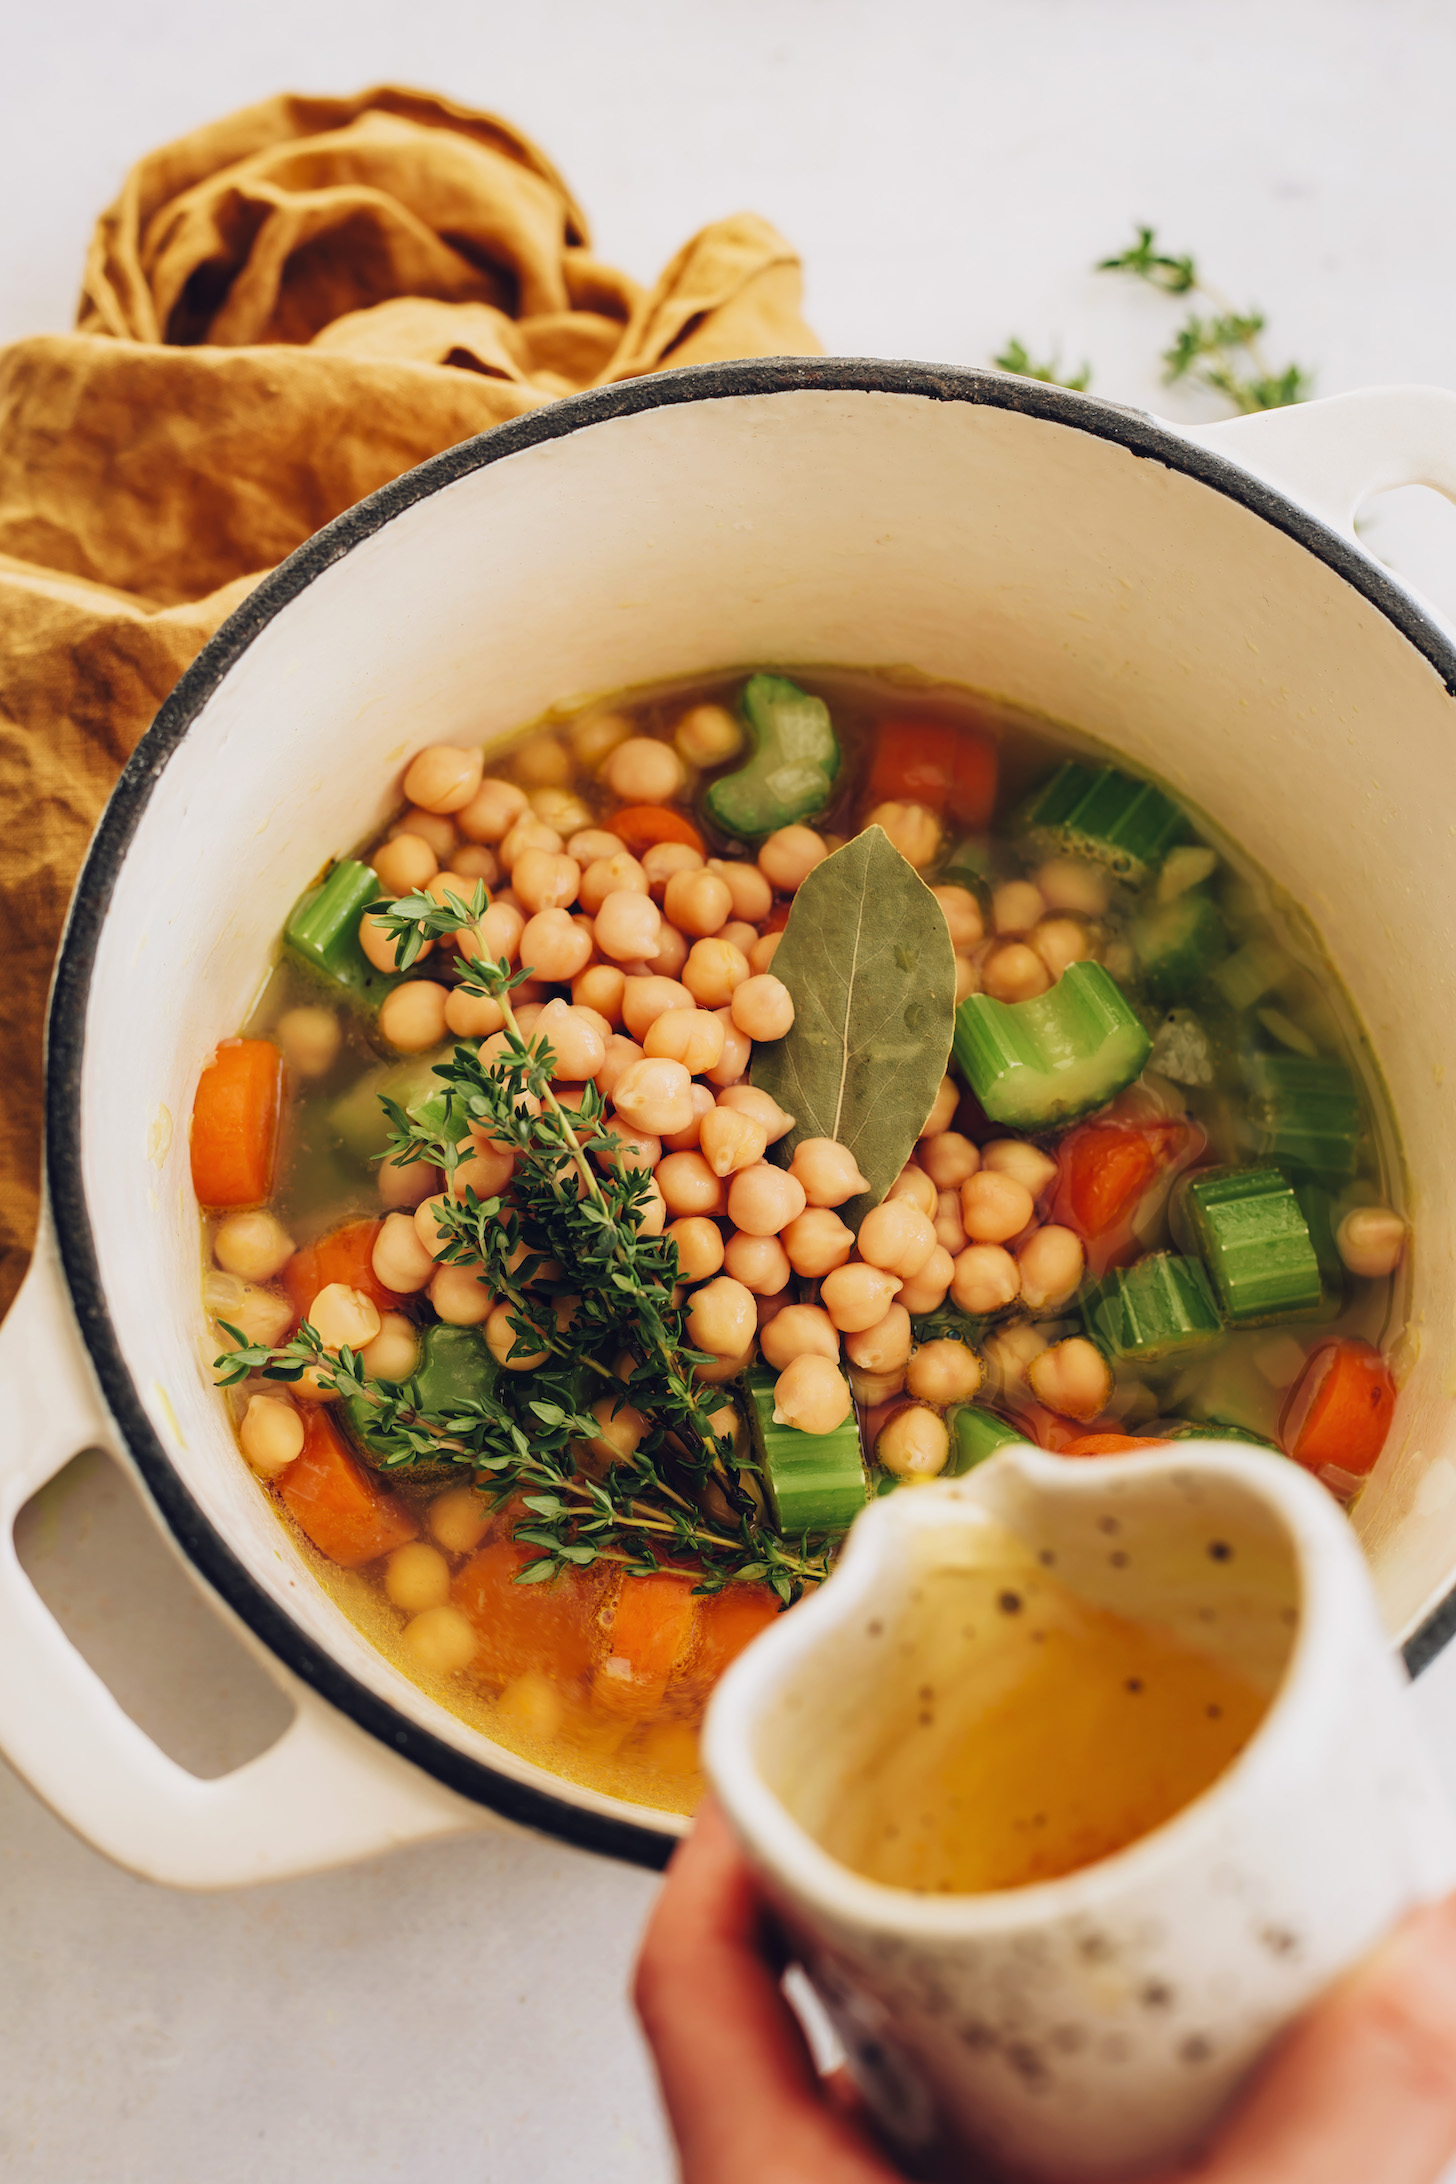 Pouring vegetable broth over carrots, celery, thyme, chickpeas, and a bay leaf